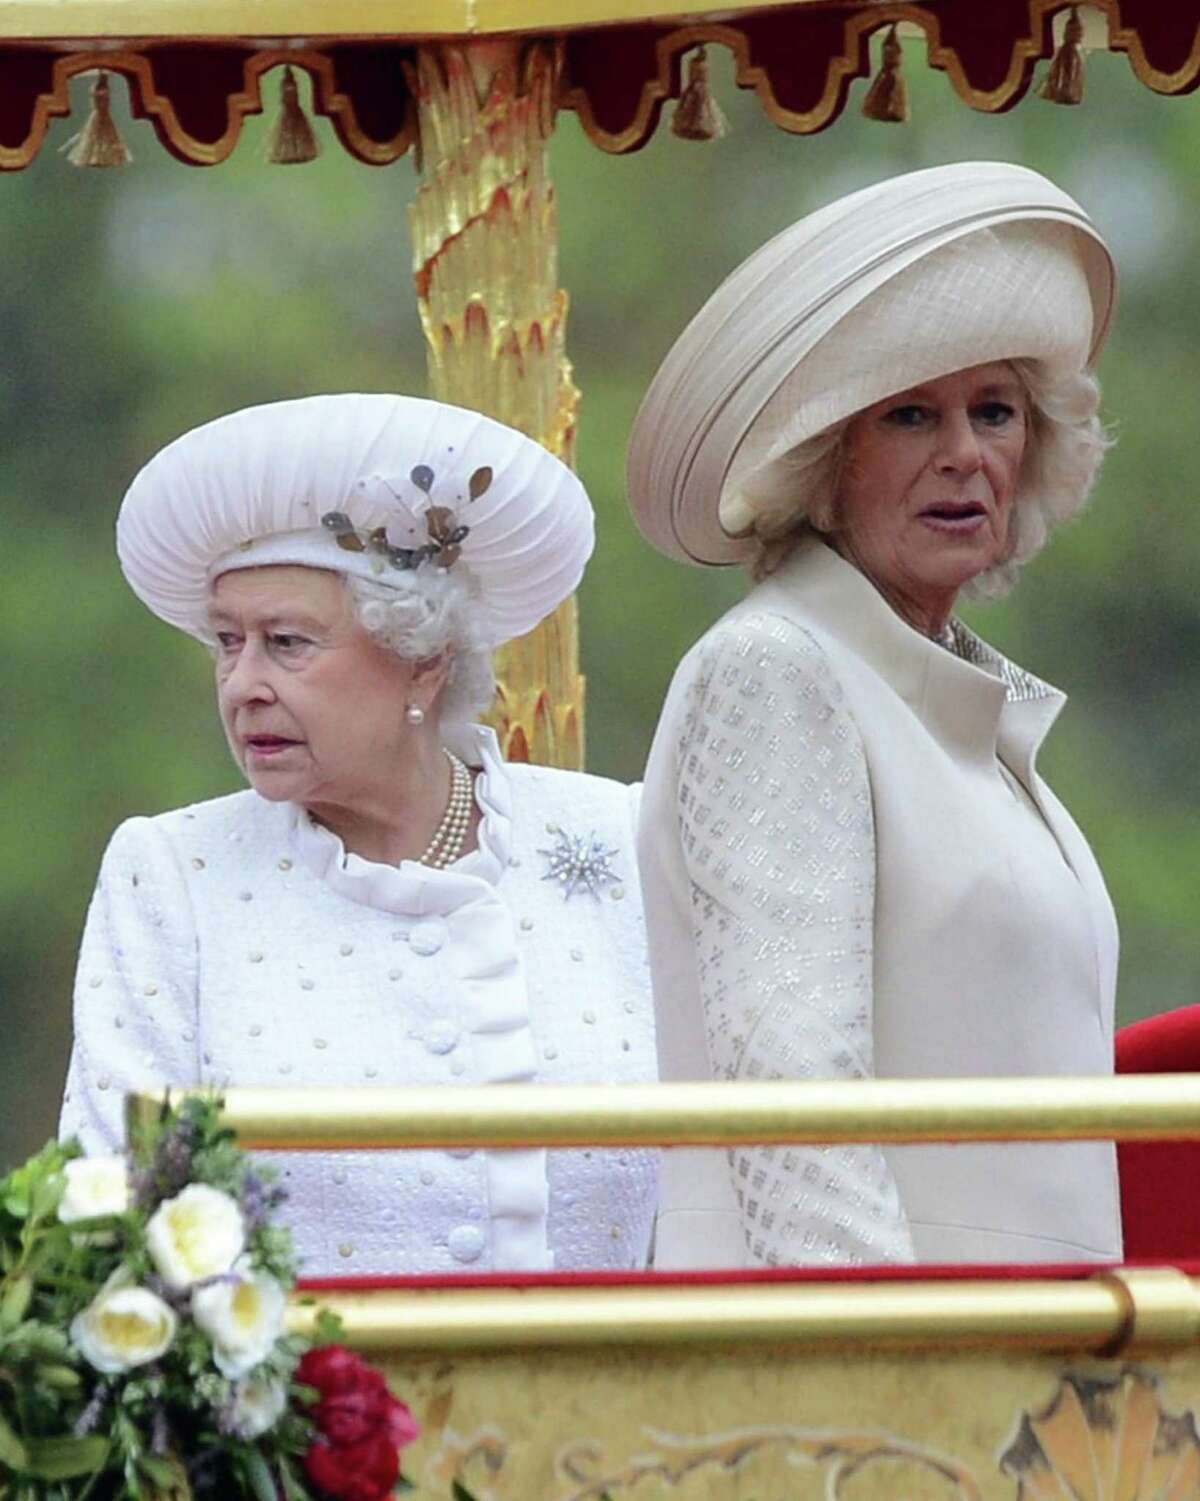 Official photographs released for The Queens 90th